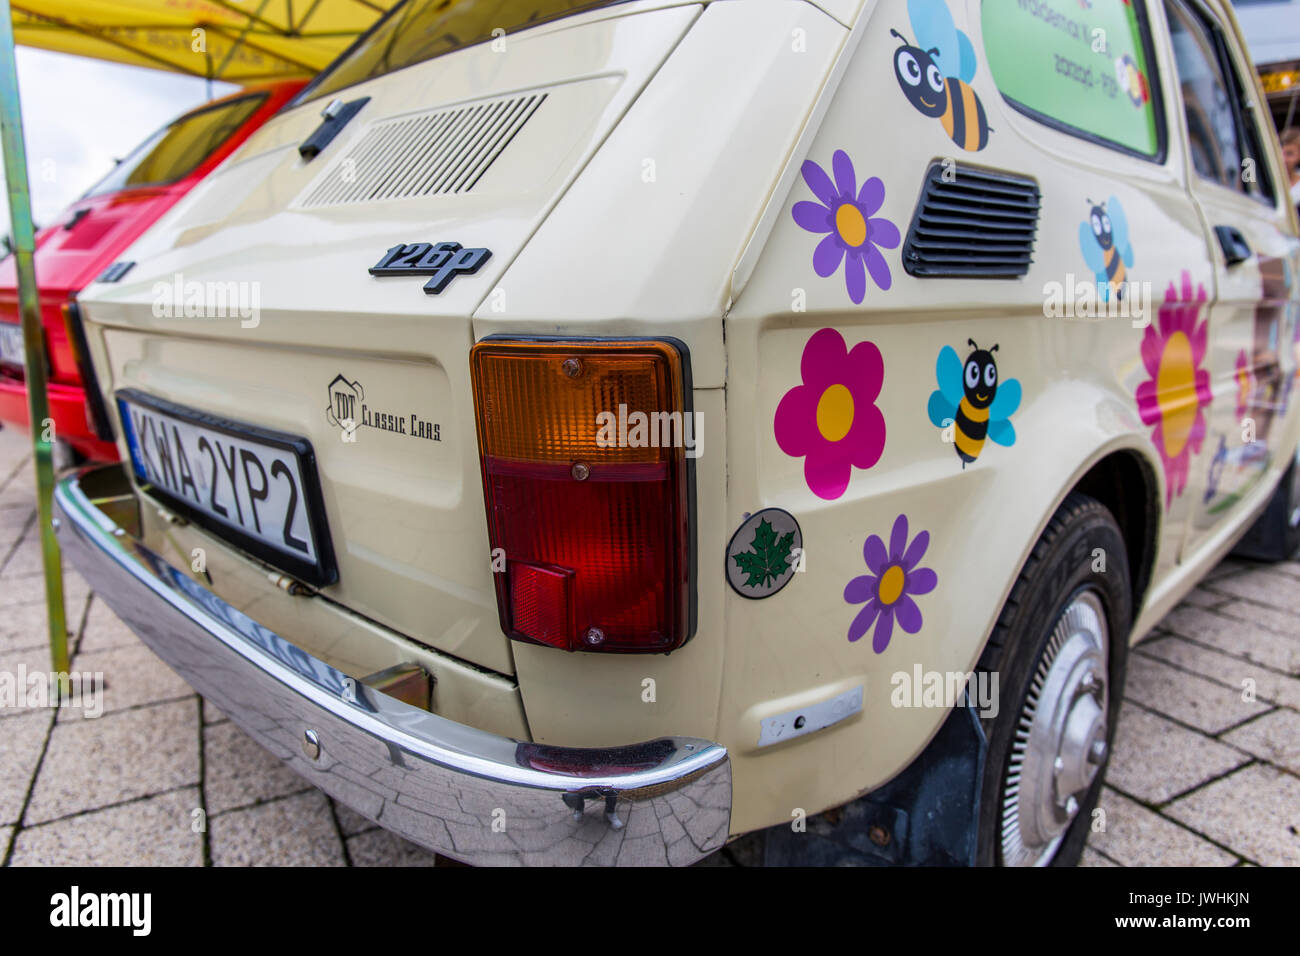 Bielsko-Biala, Poland. 12th Aug, 2017. International automotive trade fairs - MotoShow Bielsko-Biala. Rear of a Fiat 126p with bees and flowers paint. Credit: Lukasz Obermann/Alamy Live News - Stock Image